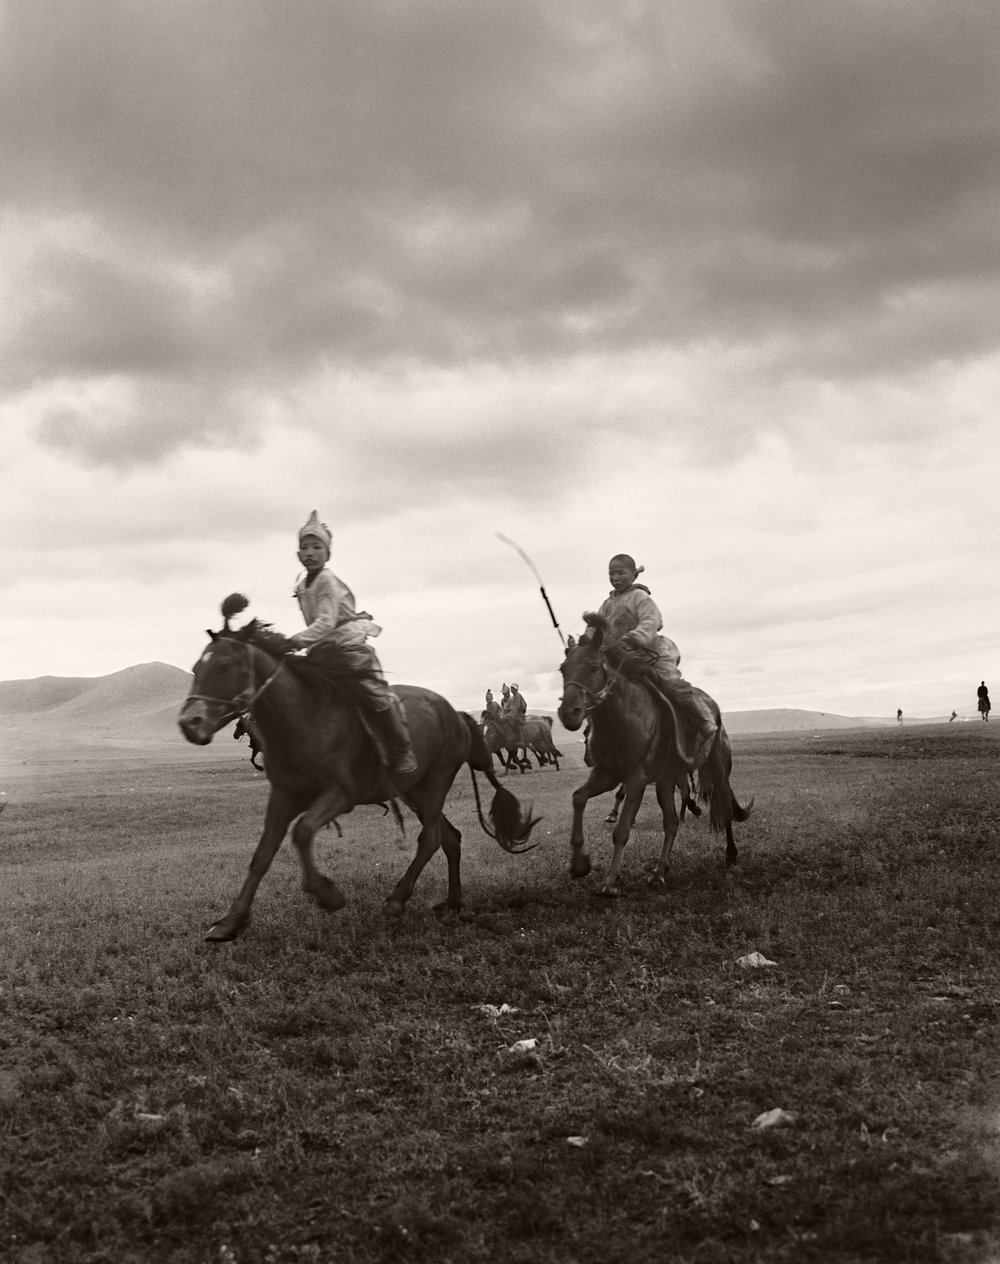 KIDS IN MONGOLIA ON HORSES